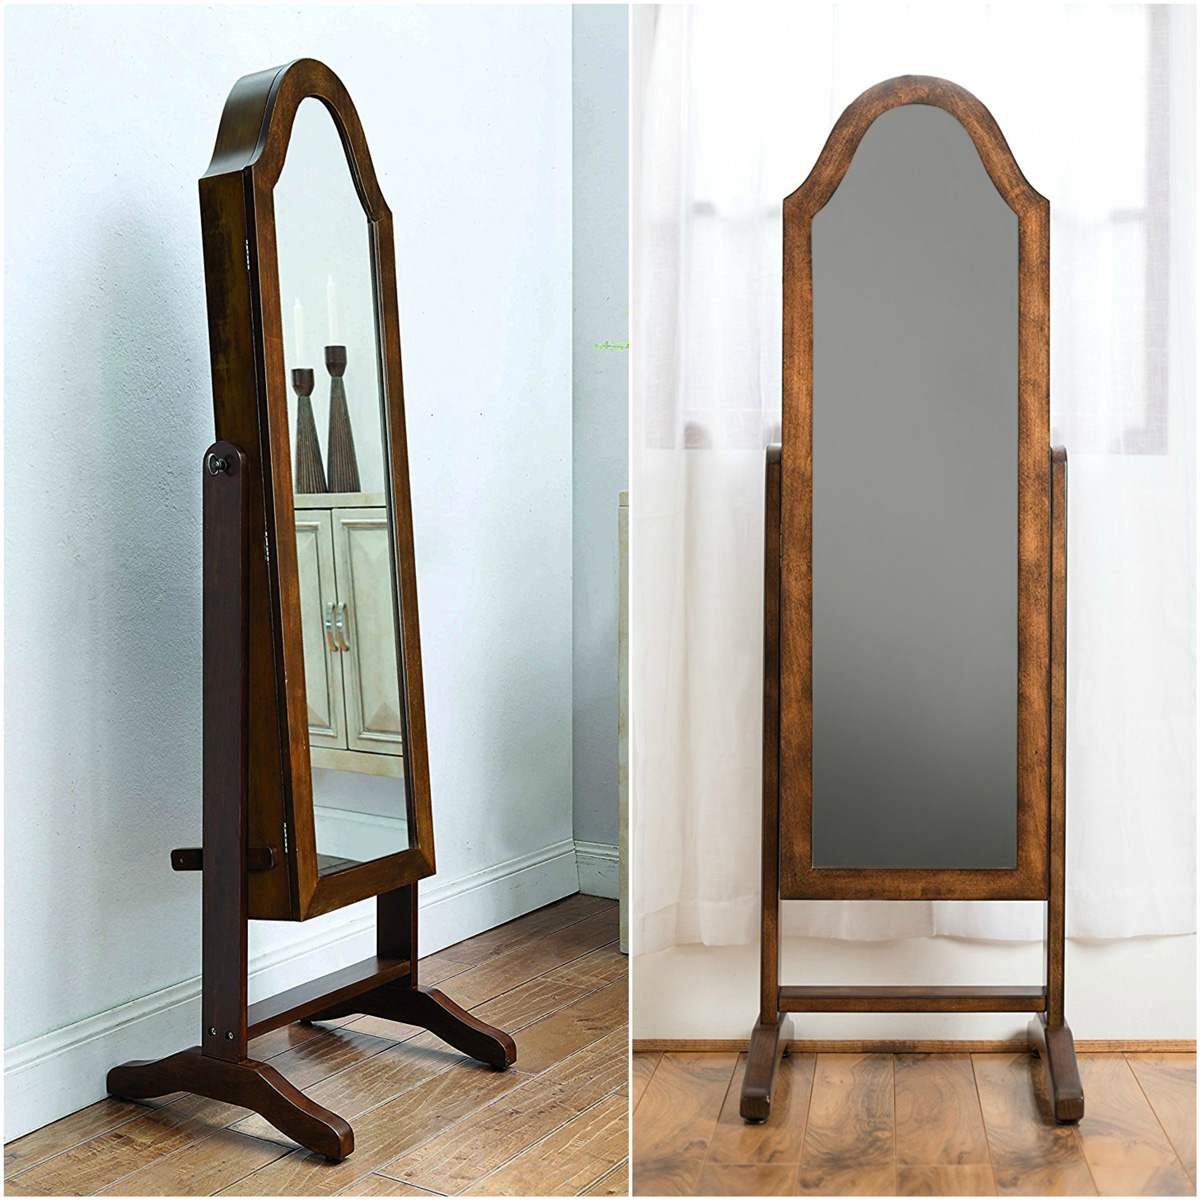 Beautiful Rustic Tall Full Length Mirror Floor Standing Jewelry Armoire